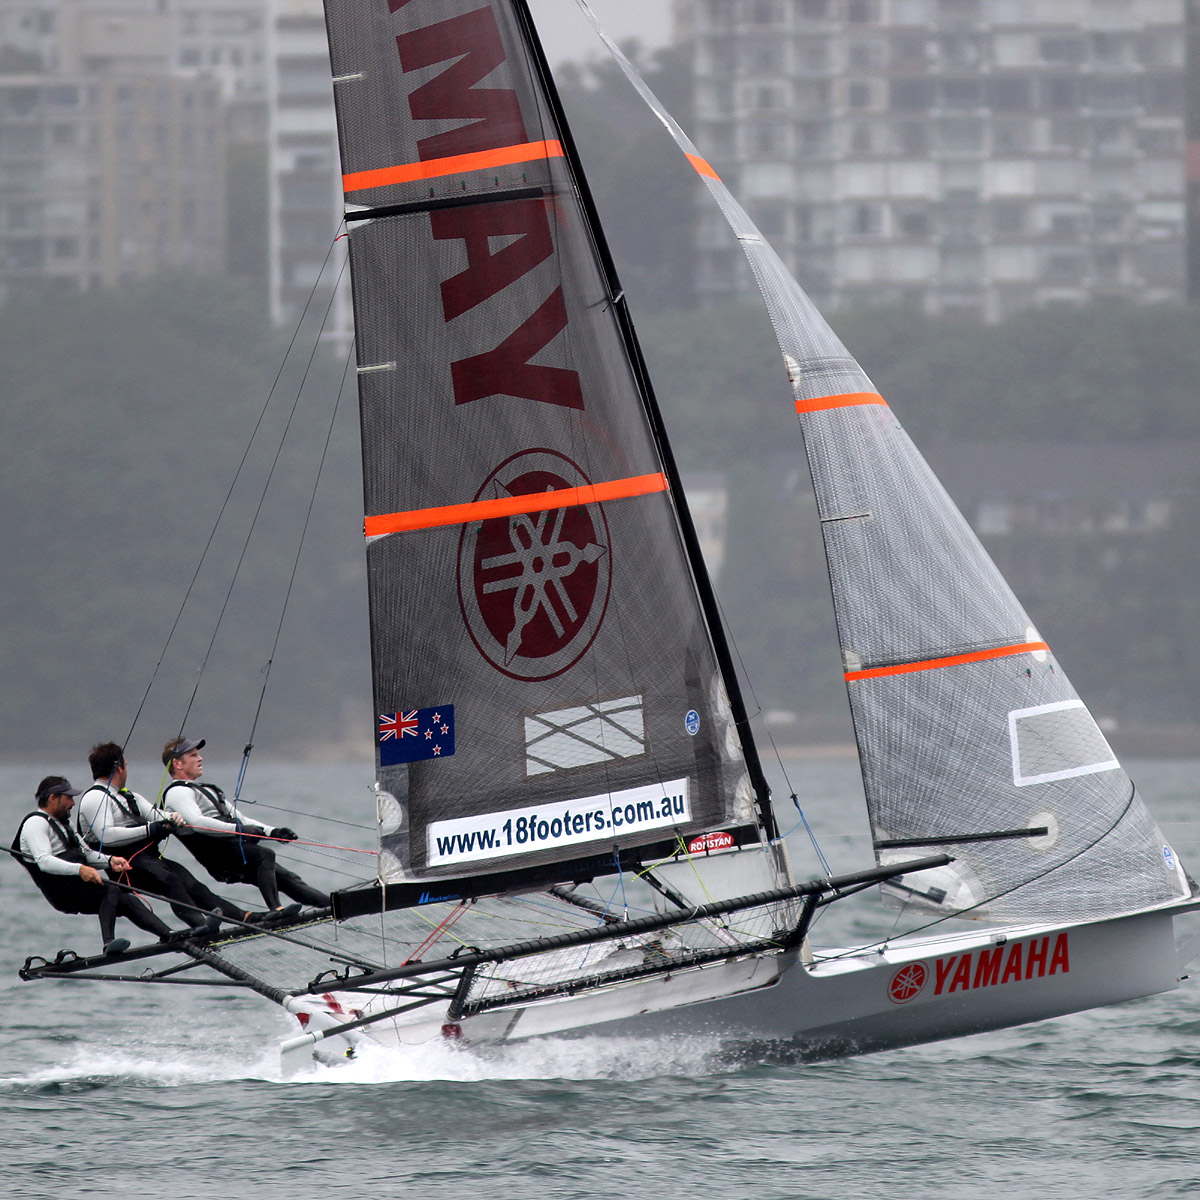 Yamaha at speed on the two-sail reach